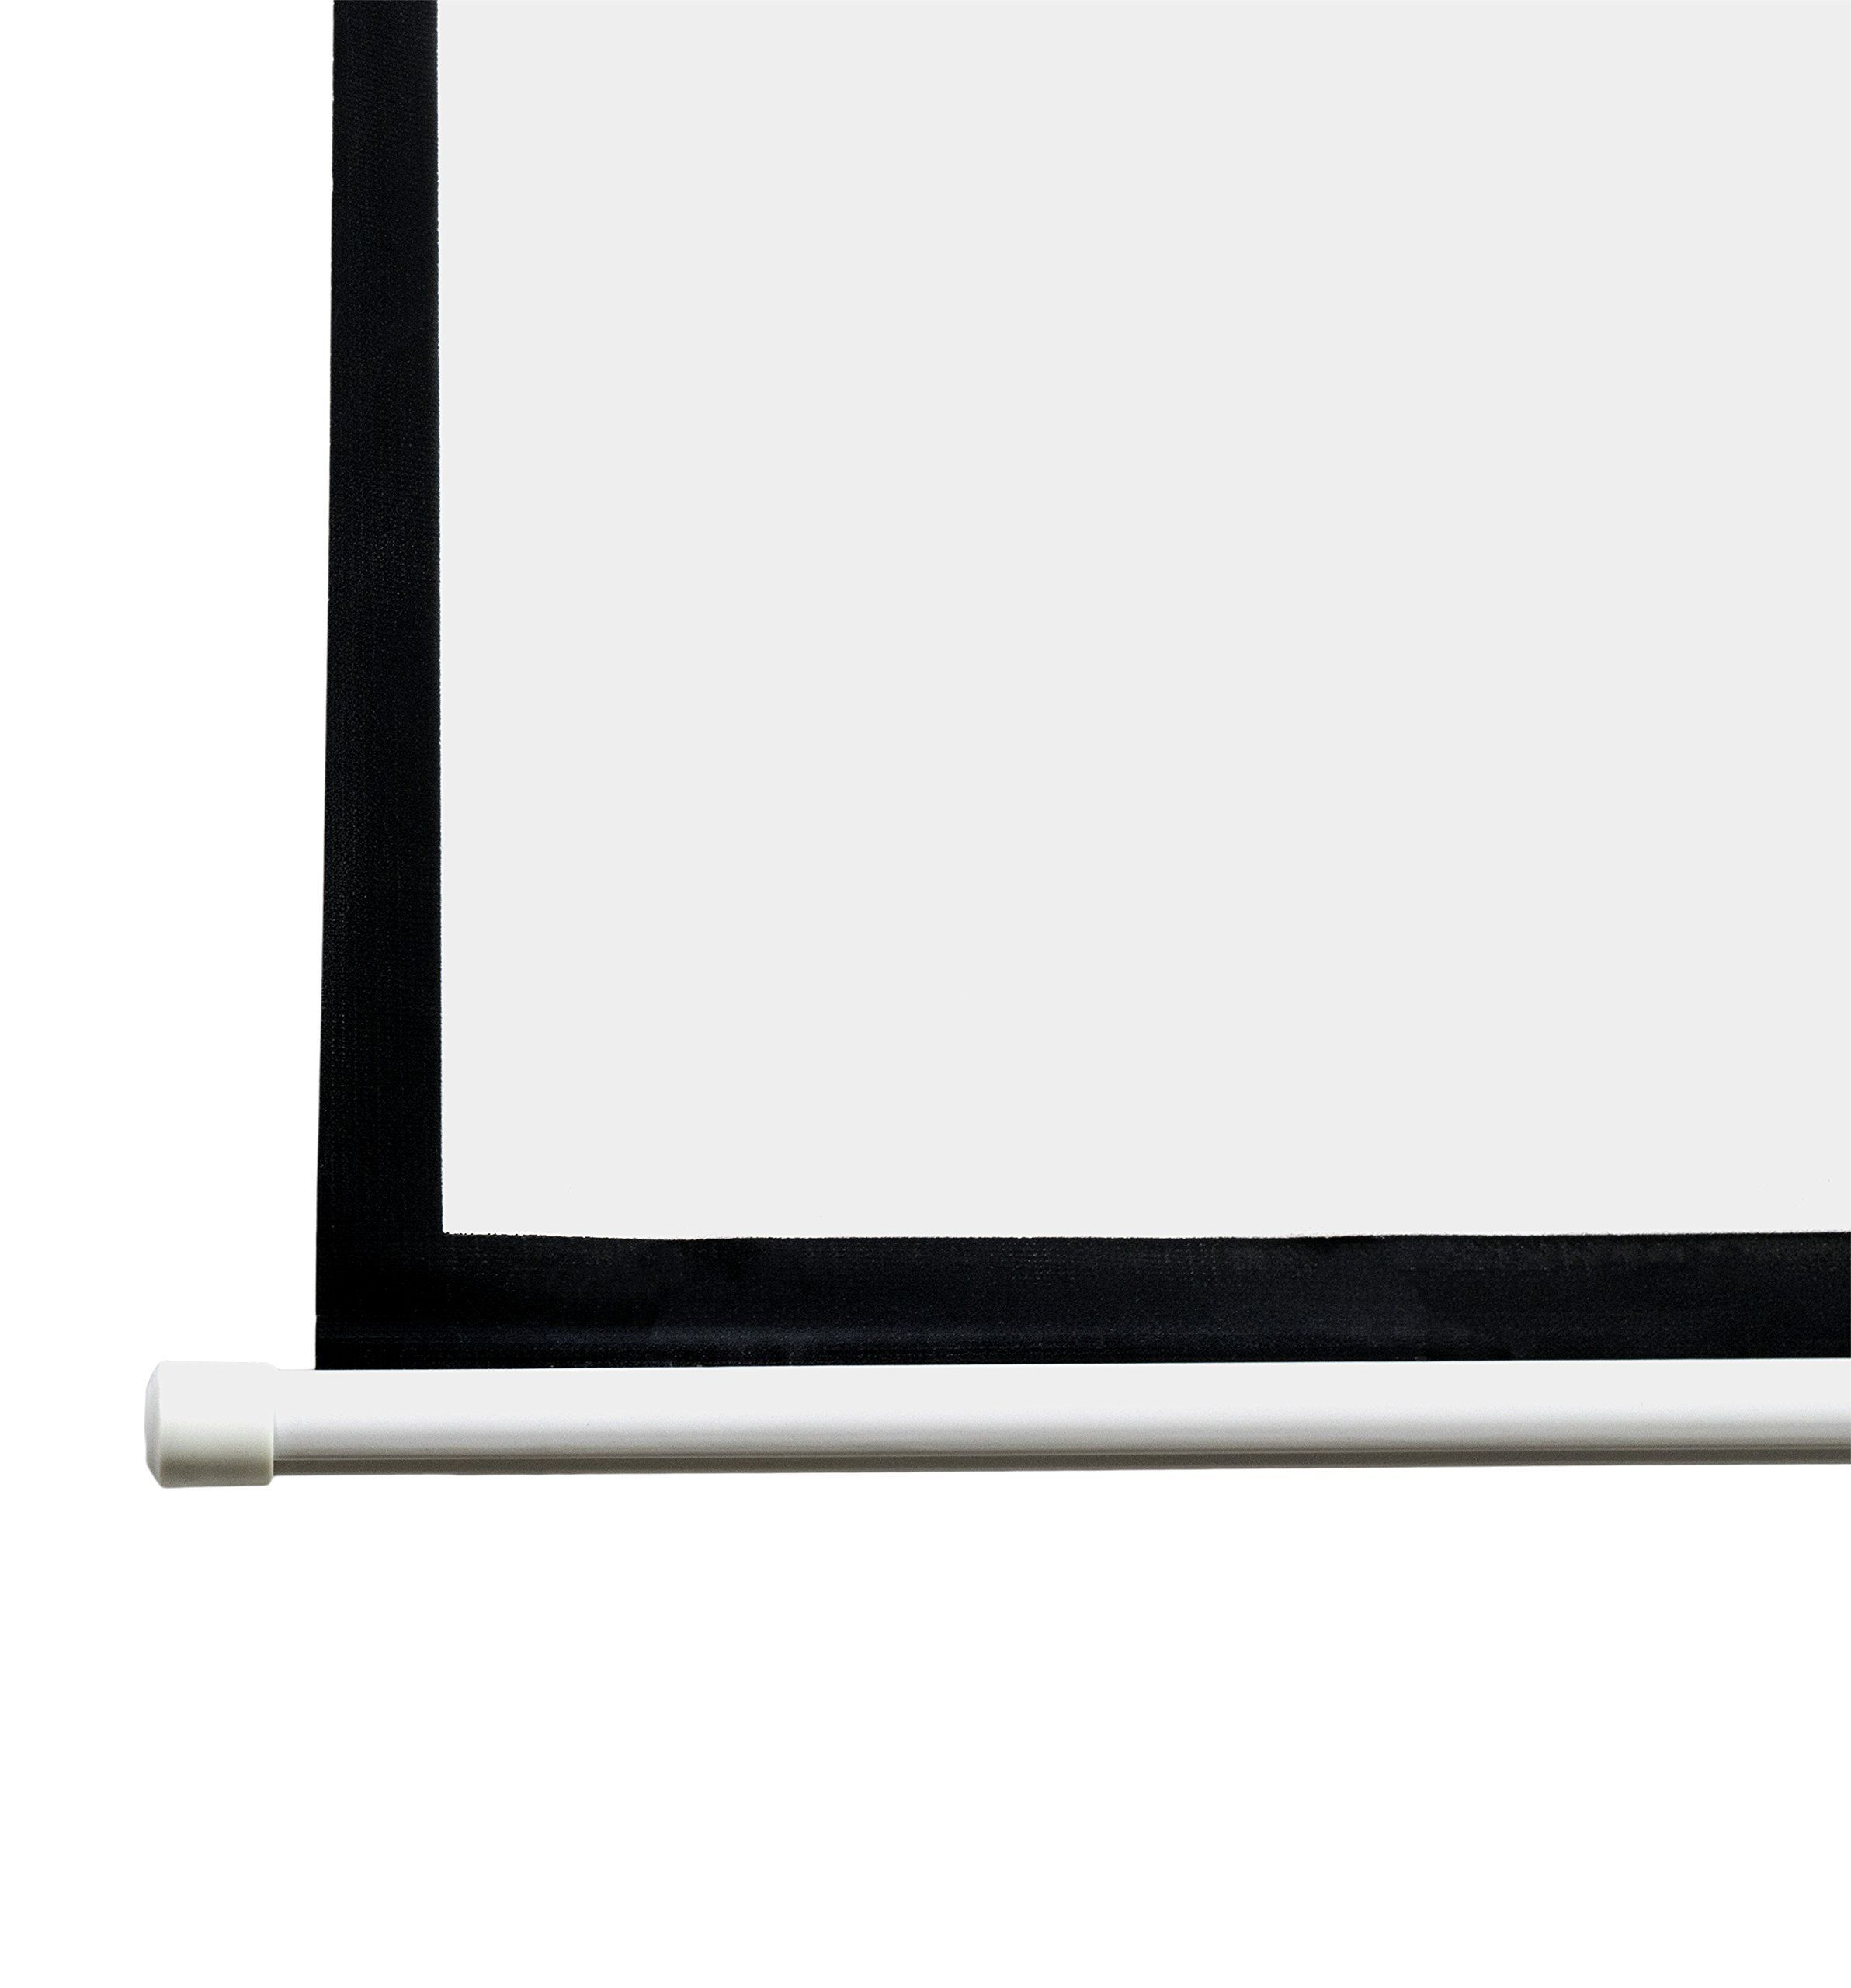 Vivo 100 Projector Screen 100 Inch Diagonal 16 9 Projection Hd Manual Pull Down Home Theater Home Theater Projectors Projector Screen Home Theater Installation